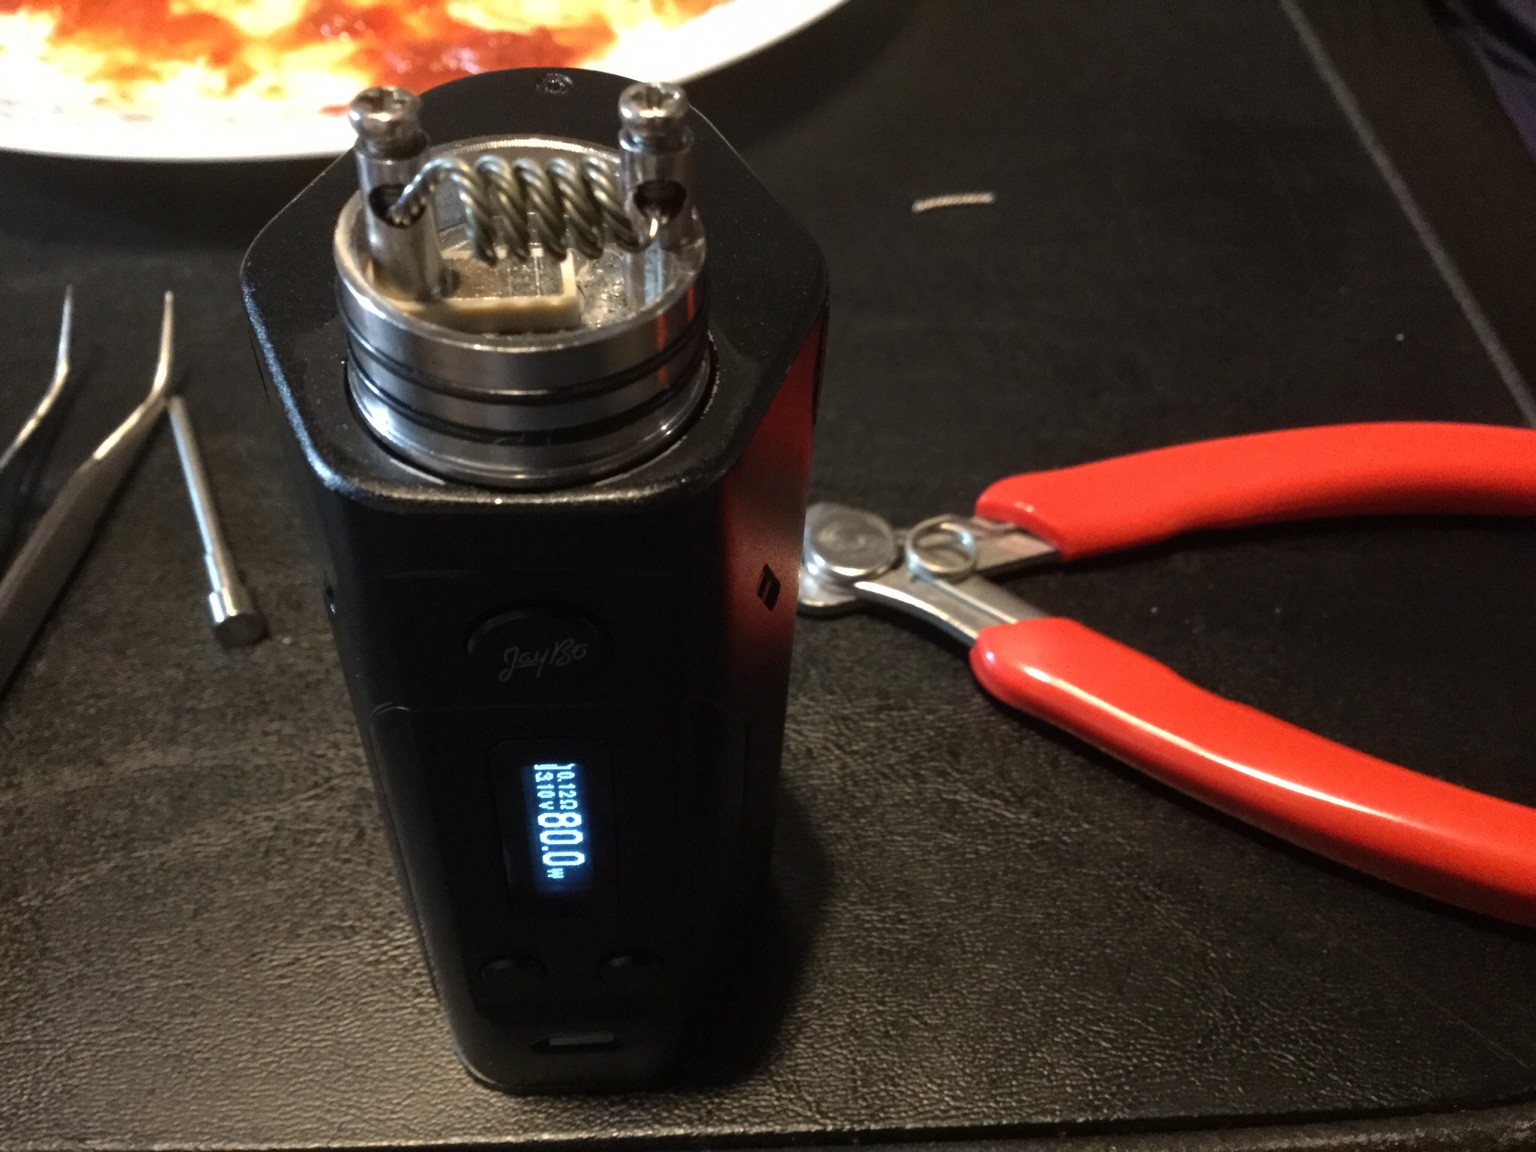 twisted vs  clapton is the flavor equal? | Vaping